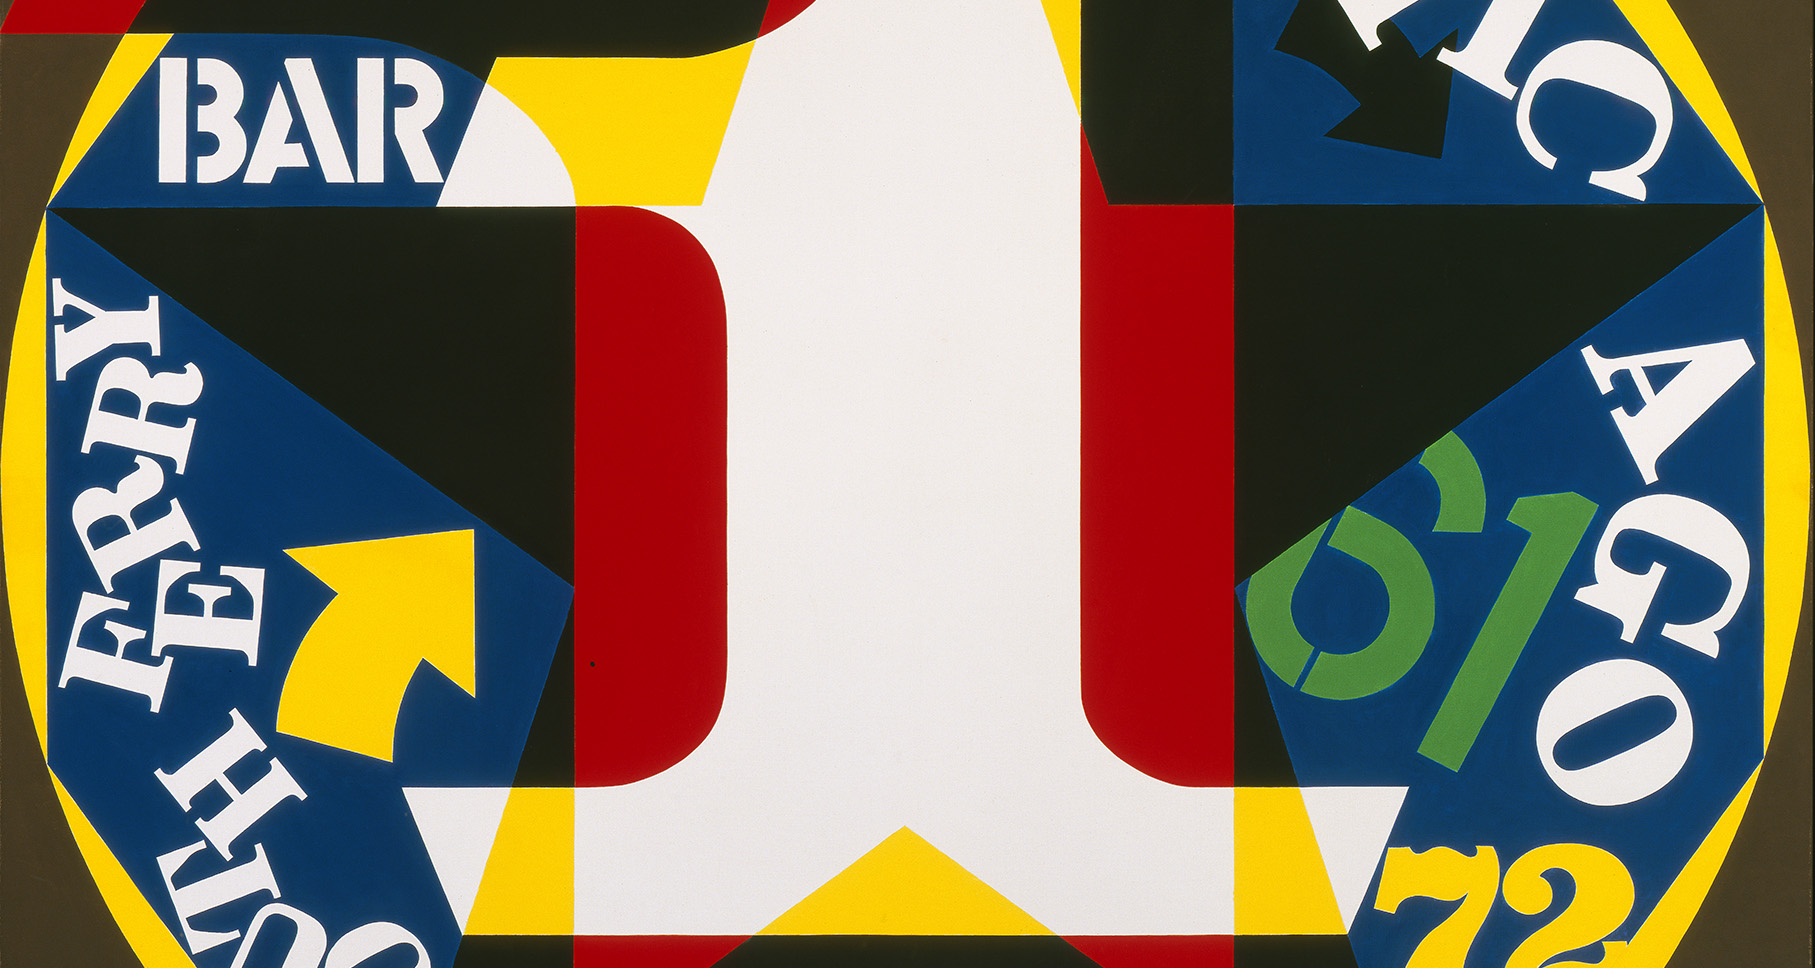 McNay Art Museum Honors the Life and Art Of Dynamic Pop Icon Robert Indiana in New Exhibition